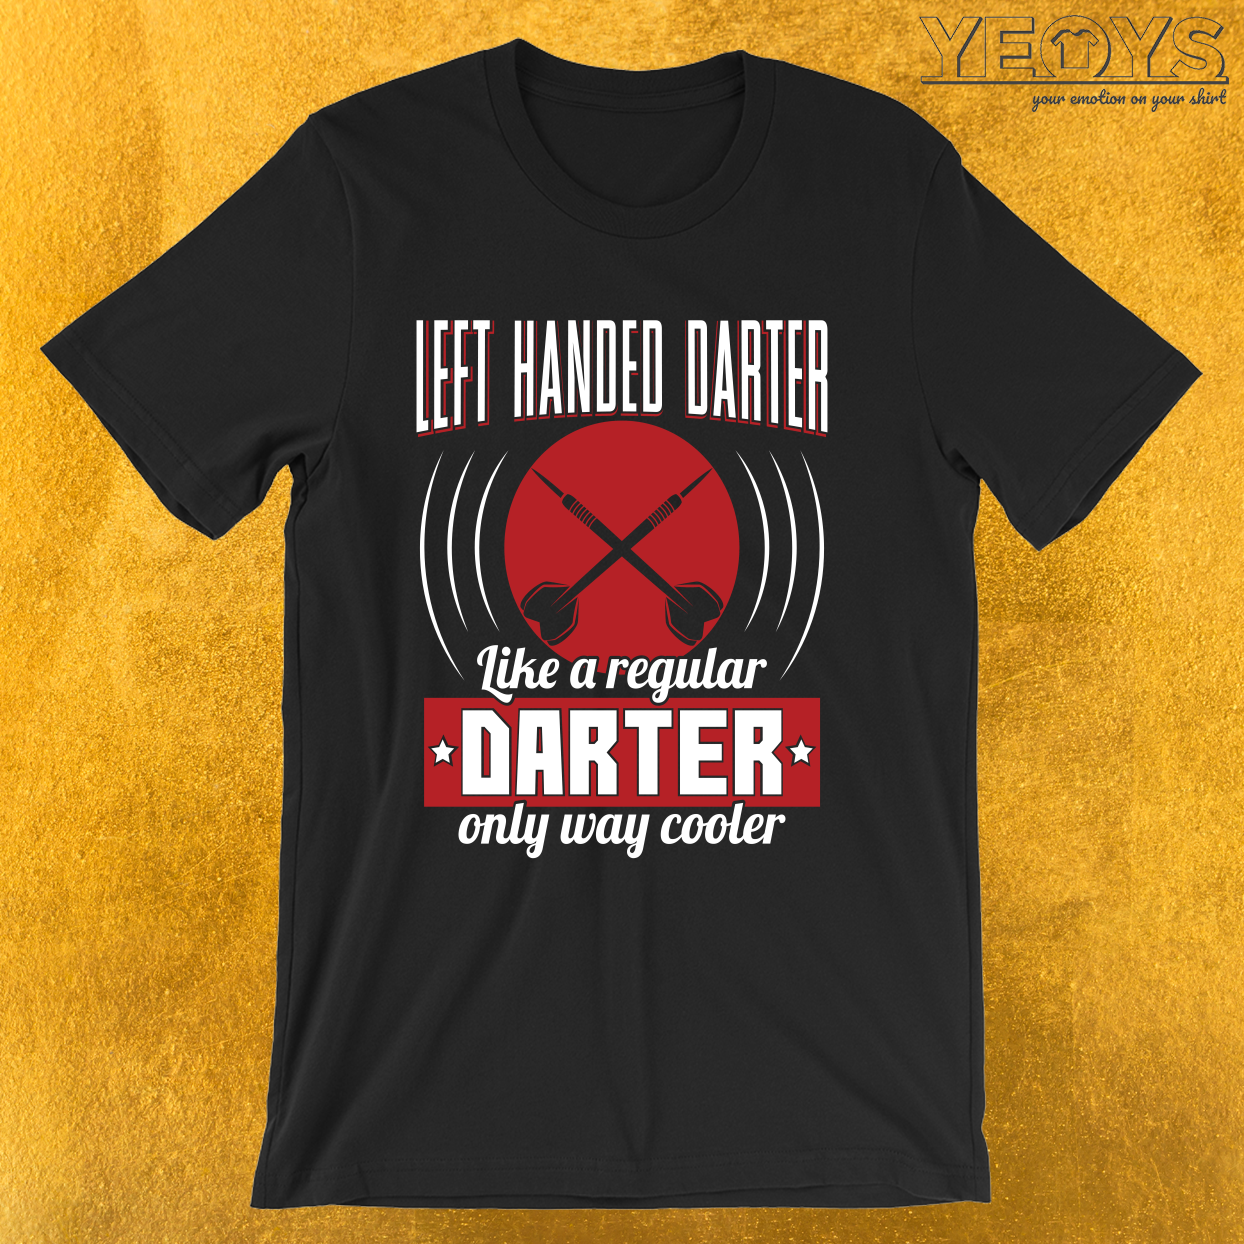 Left Handed Darter Like A Regular Only Cooler – Left Handed Darter Tee